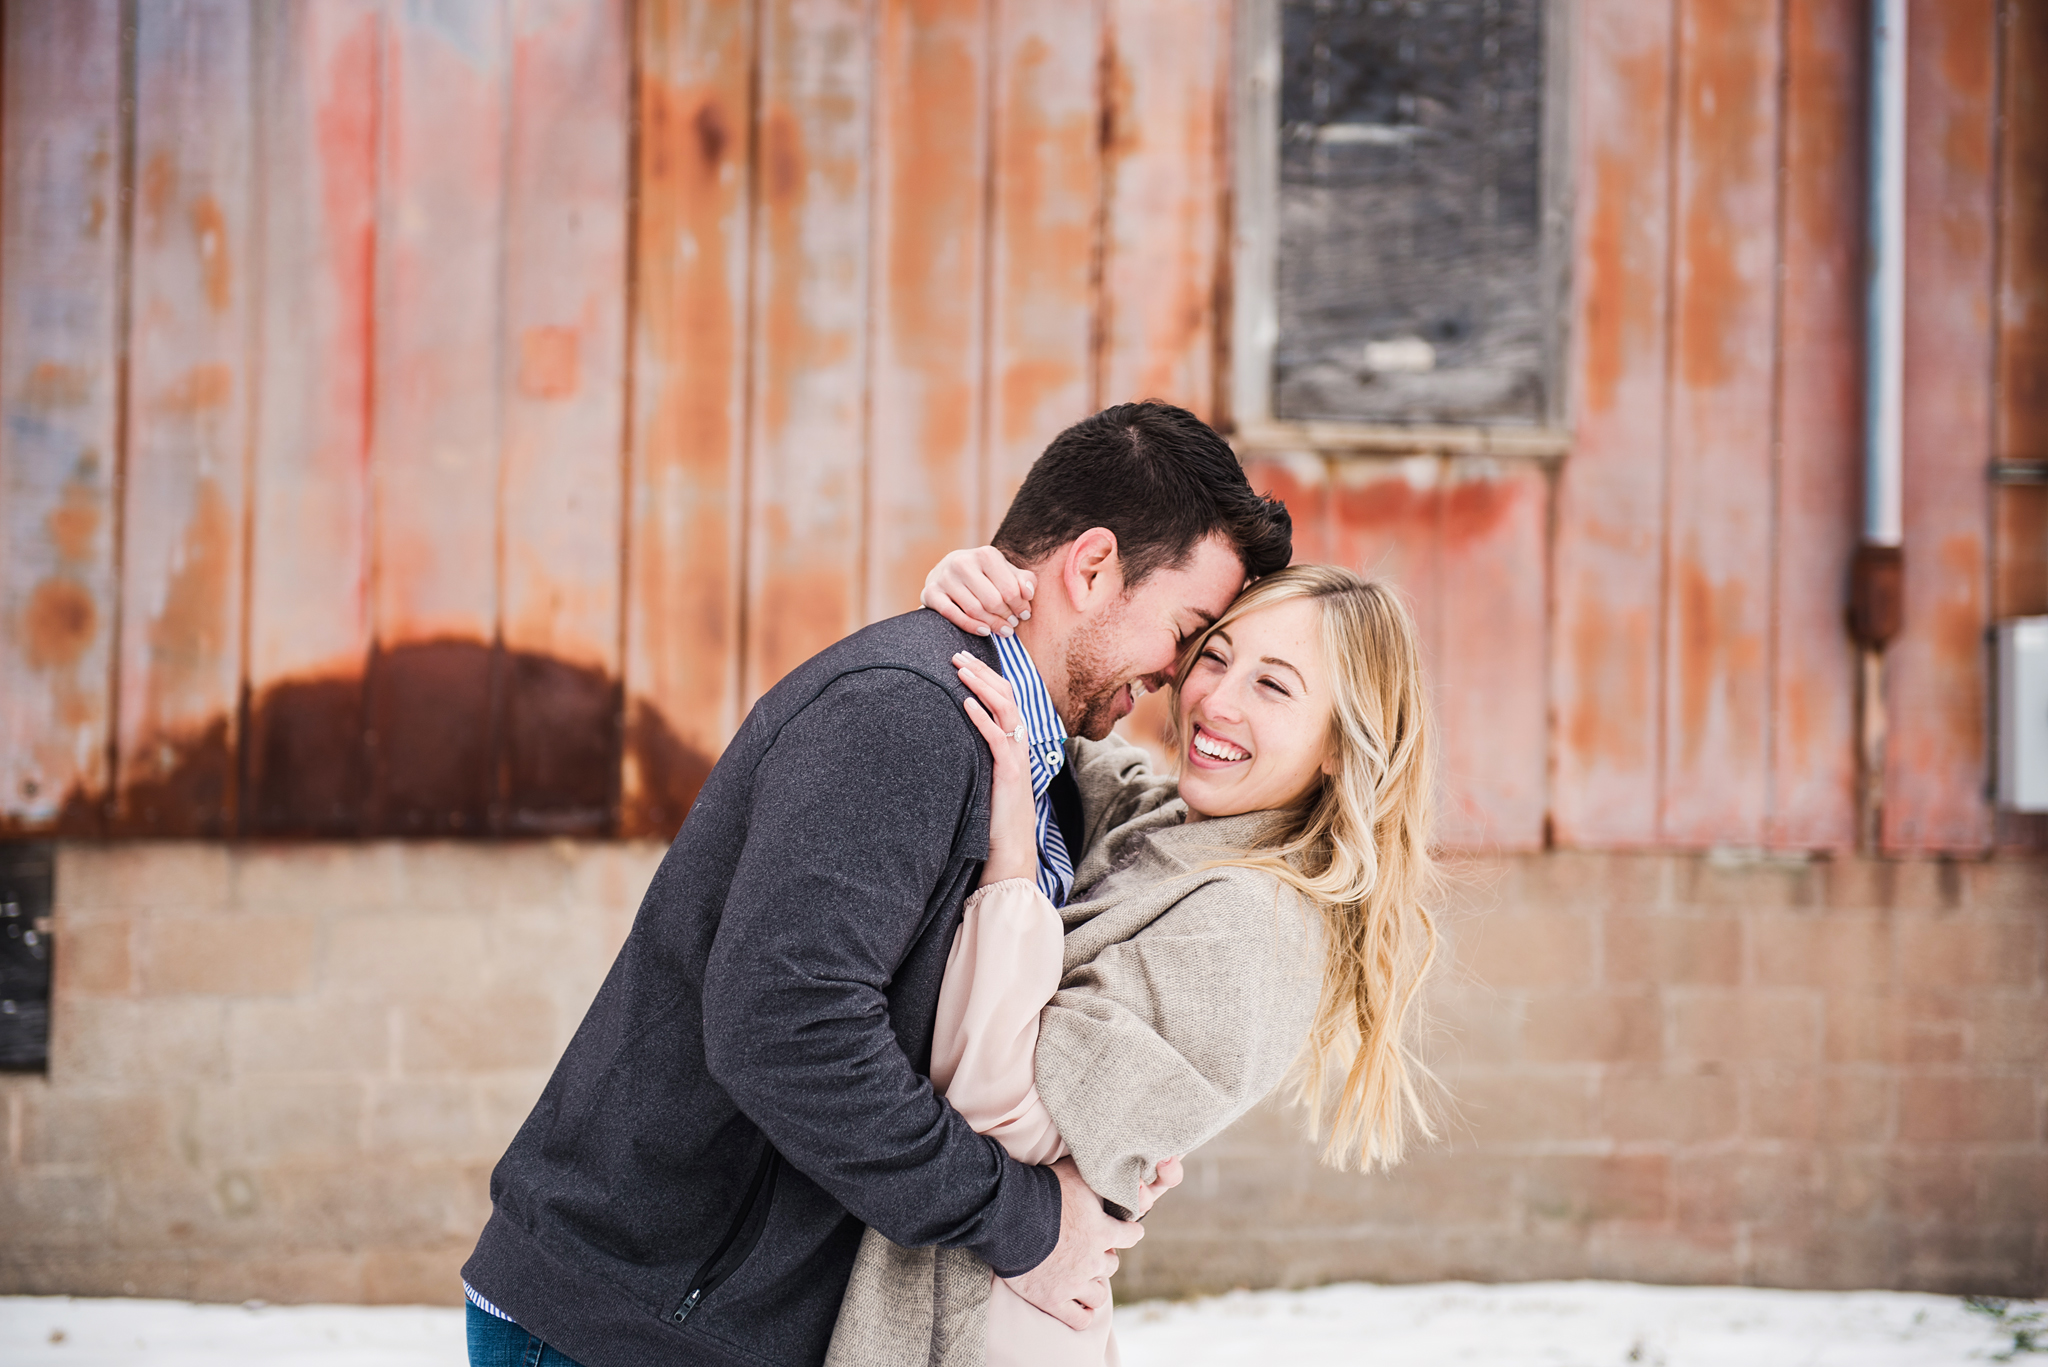 Schoen_Place_Rochester_Engagement_Session_JILL_STUDIO_Rochester_NY_Photographer_DSC_1248.jpg